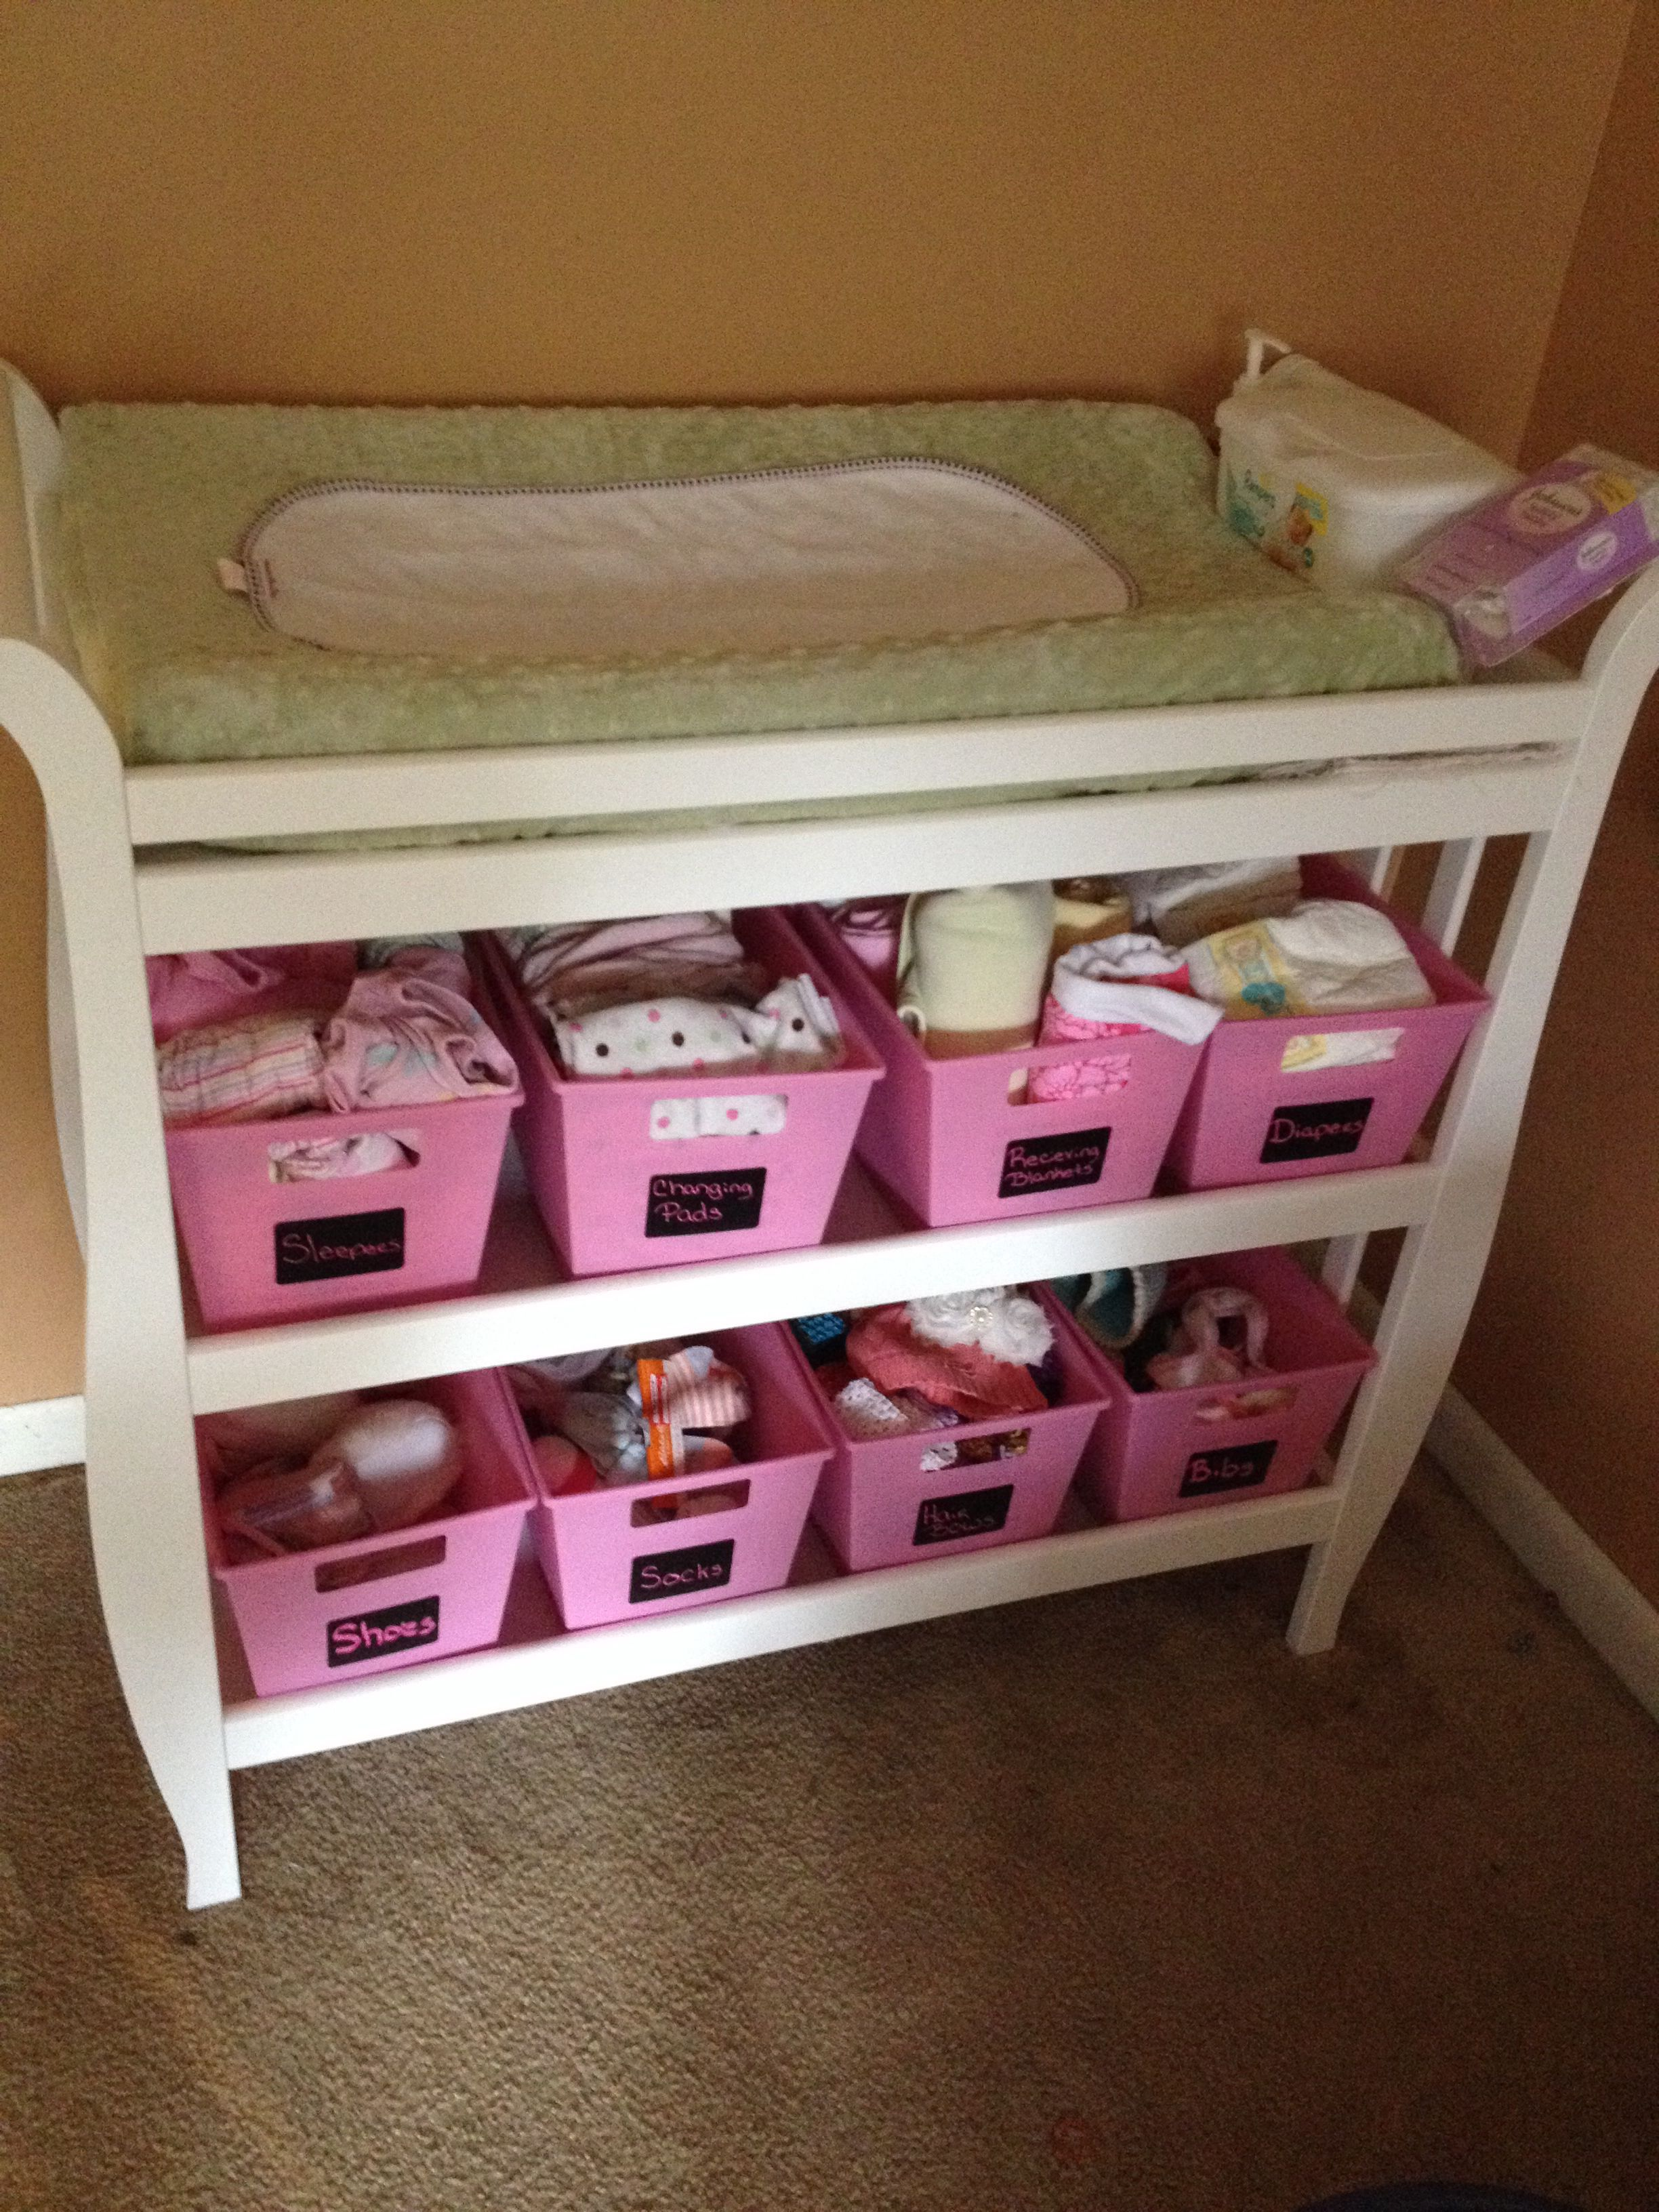 Pin By Linda Owens On Done :) | Baby Storage, Baby Toys Newborn, Baby Changing Table